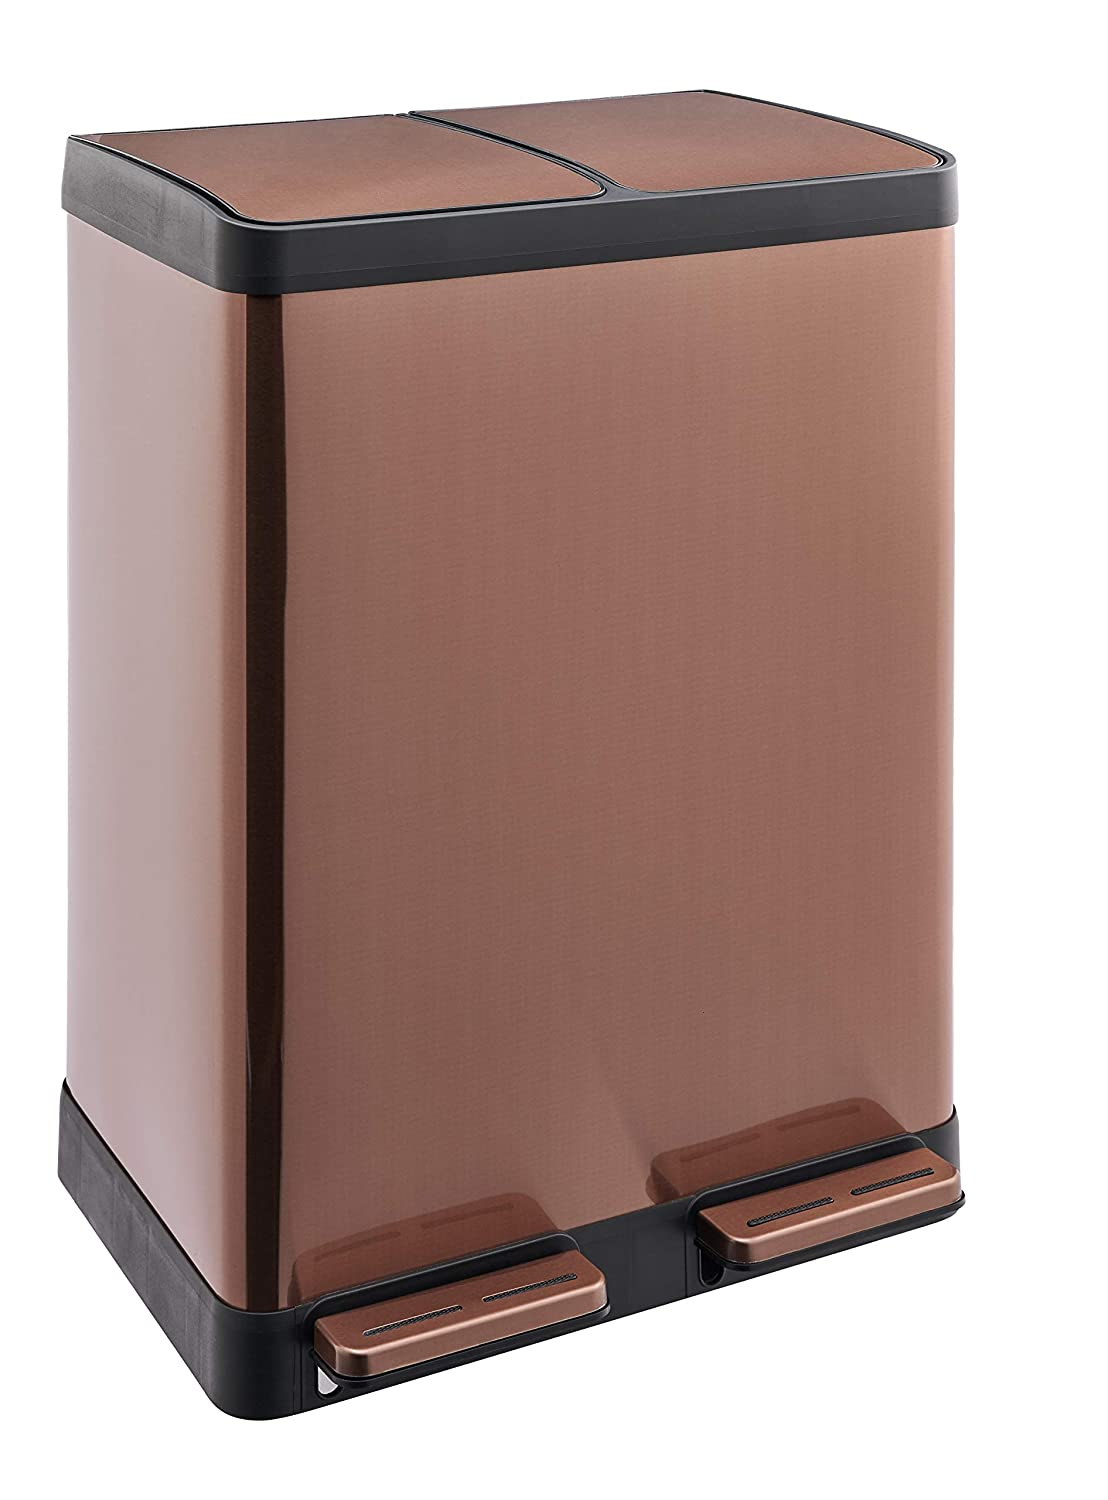 Plastic Garden Waste and Compost Kitchen Recycle Bin LIVIVO Stylish 60L Litre Stainless Steel 2 Compartment Recycling Bin Pedal Waste Trash Rubbish Glass Paper Satin Silver Cans